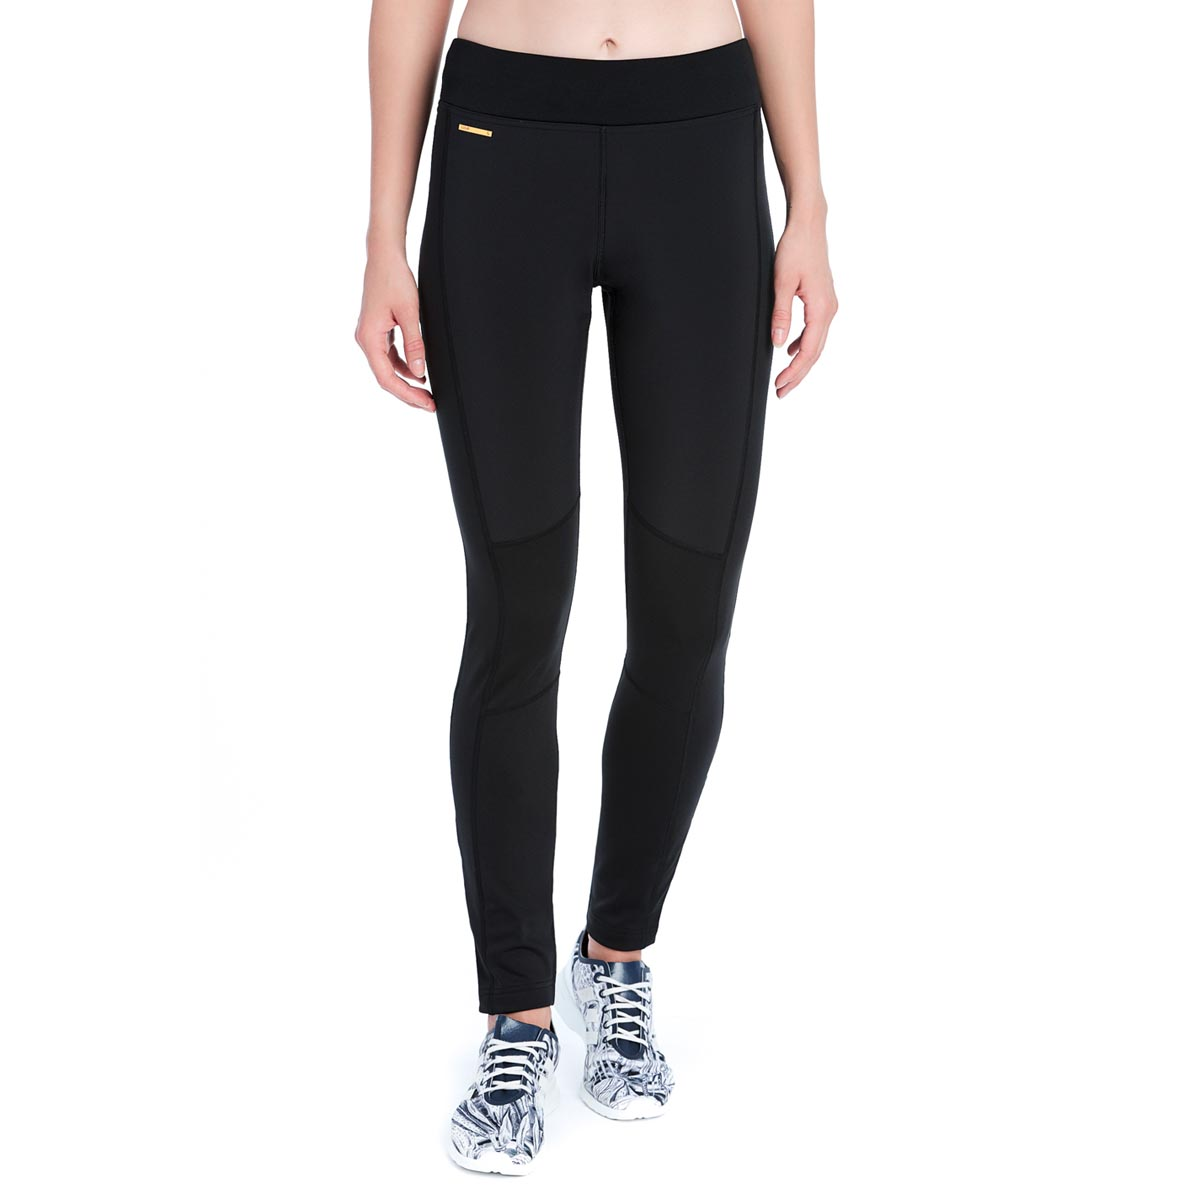 Lole Women's Hurry Up Leggings